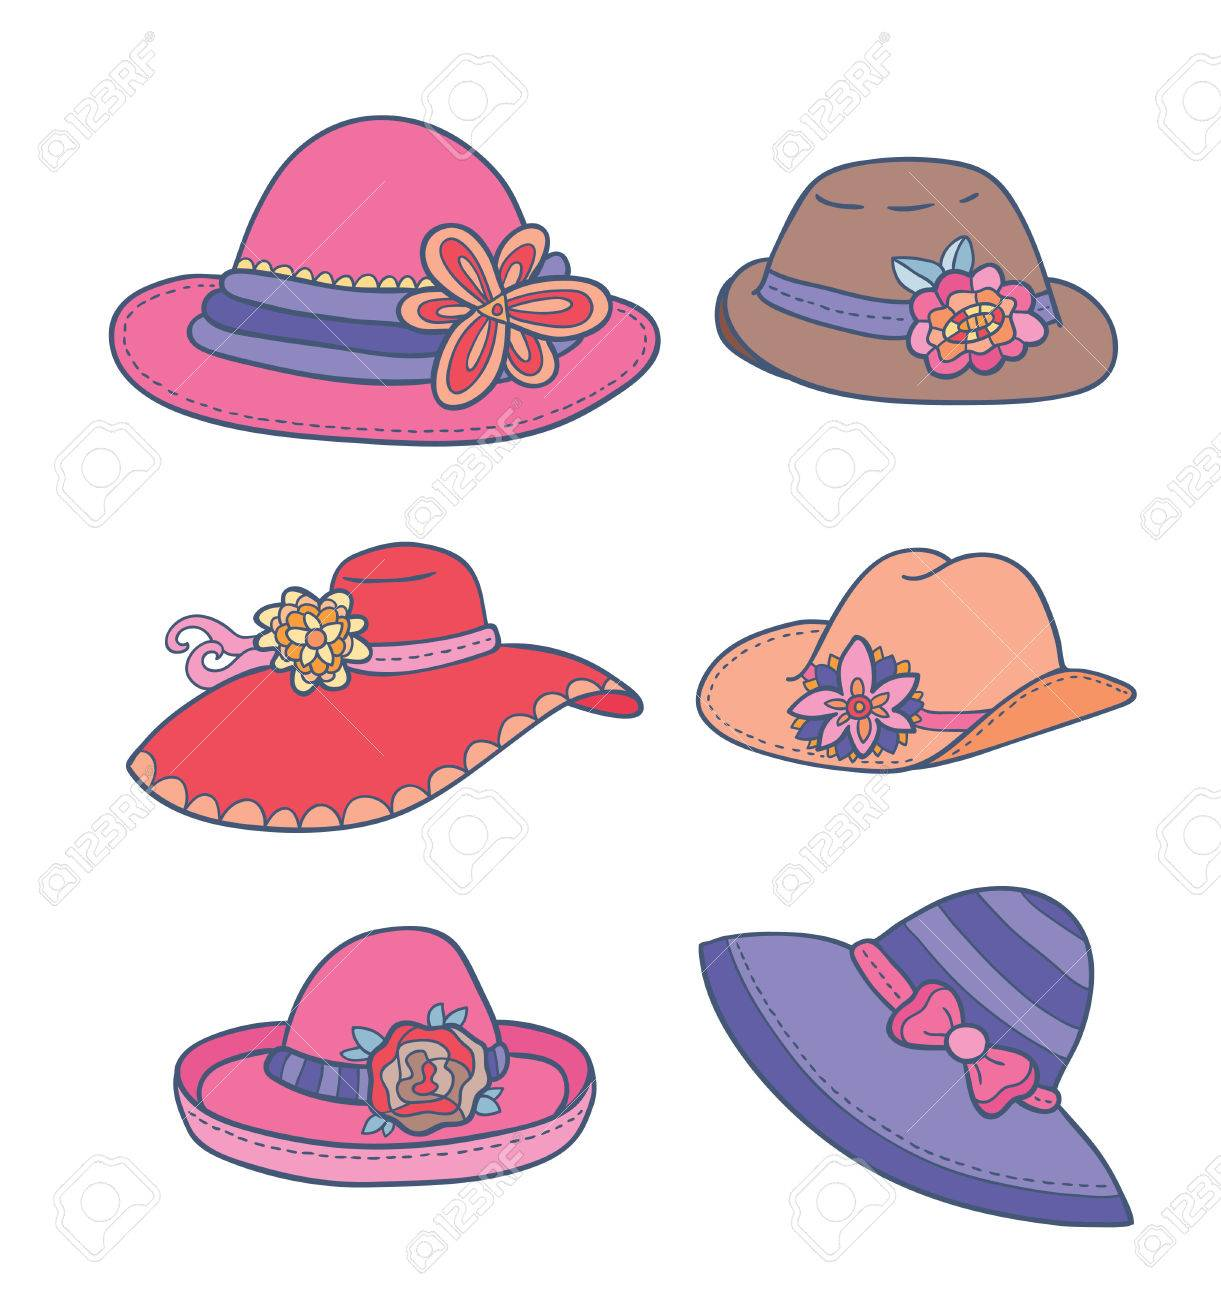 illustration of different types of summer women hats Stock Vector - 24912761 aba777dcc3e5